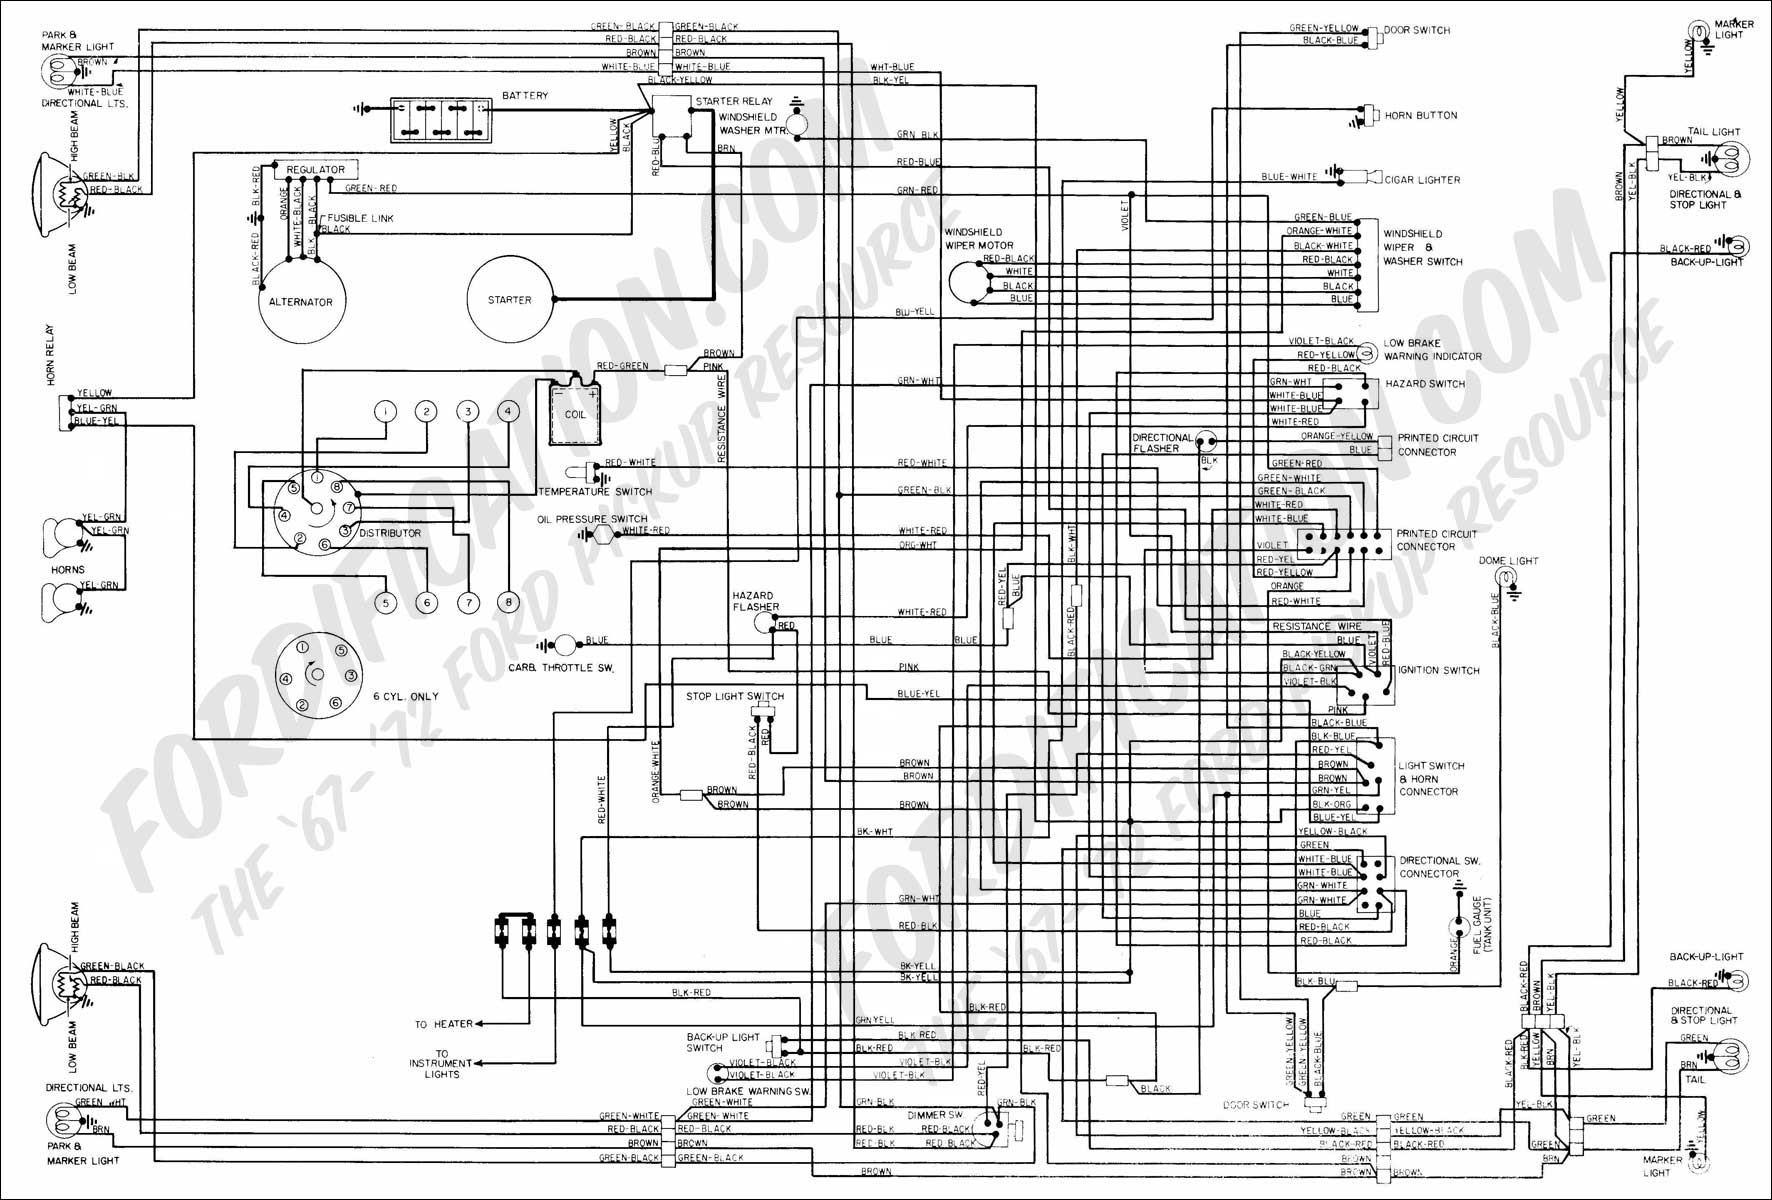 wiring diagram 72_quick 2002 ford f250 wiring diagram efcaviation com 1999 ford f350 wiring diagram at edmiracle.co